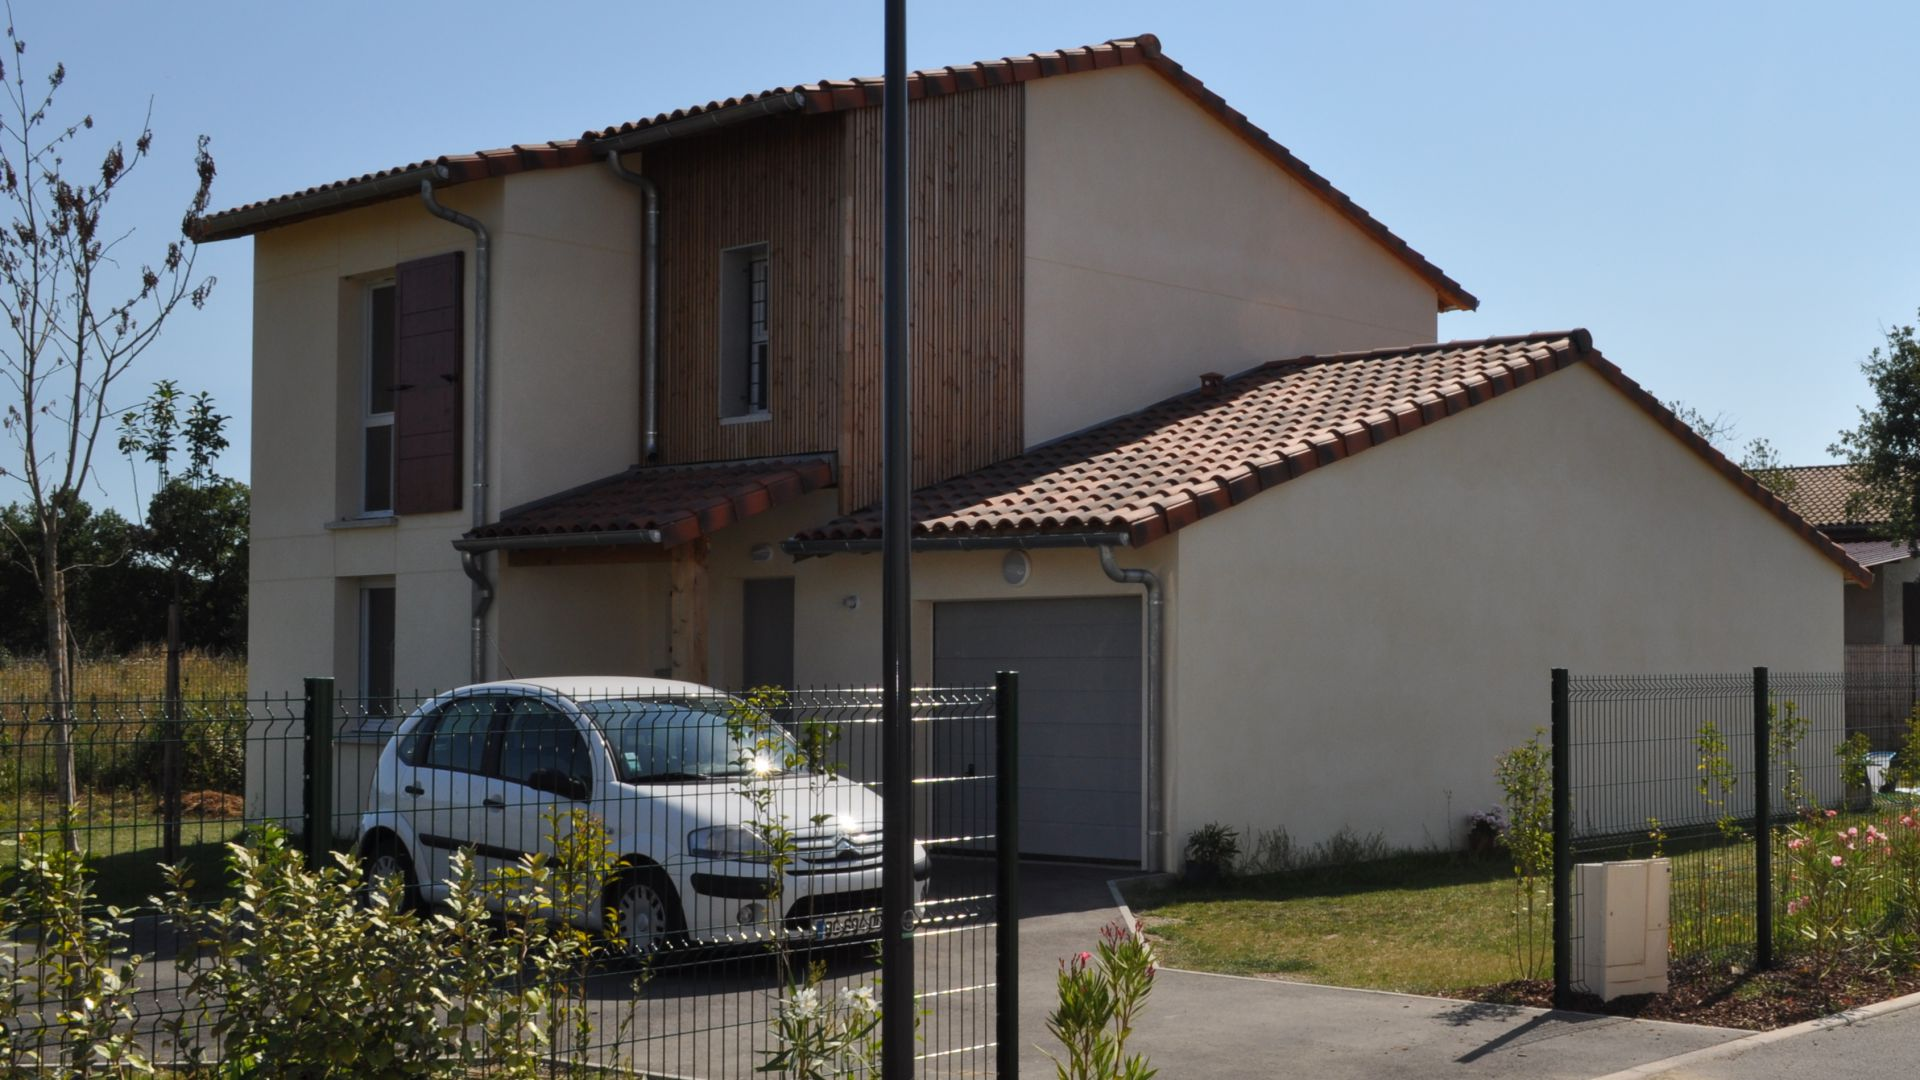 Greencity Immobilier - Le Clos Amandine - 31270- Cugnaux - location appartements et villas